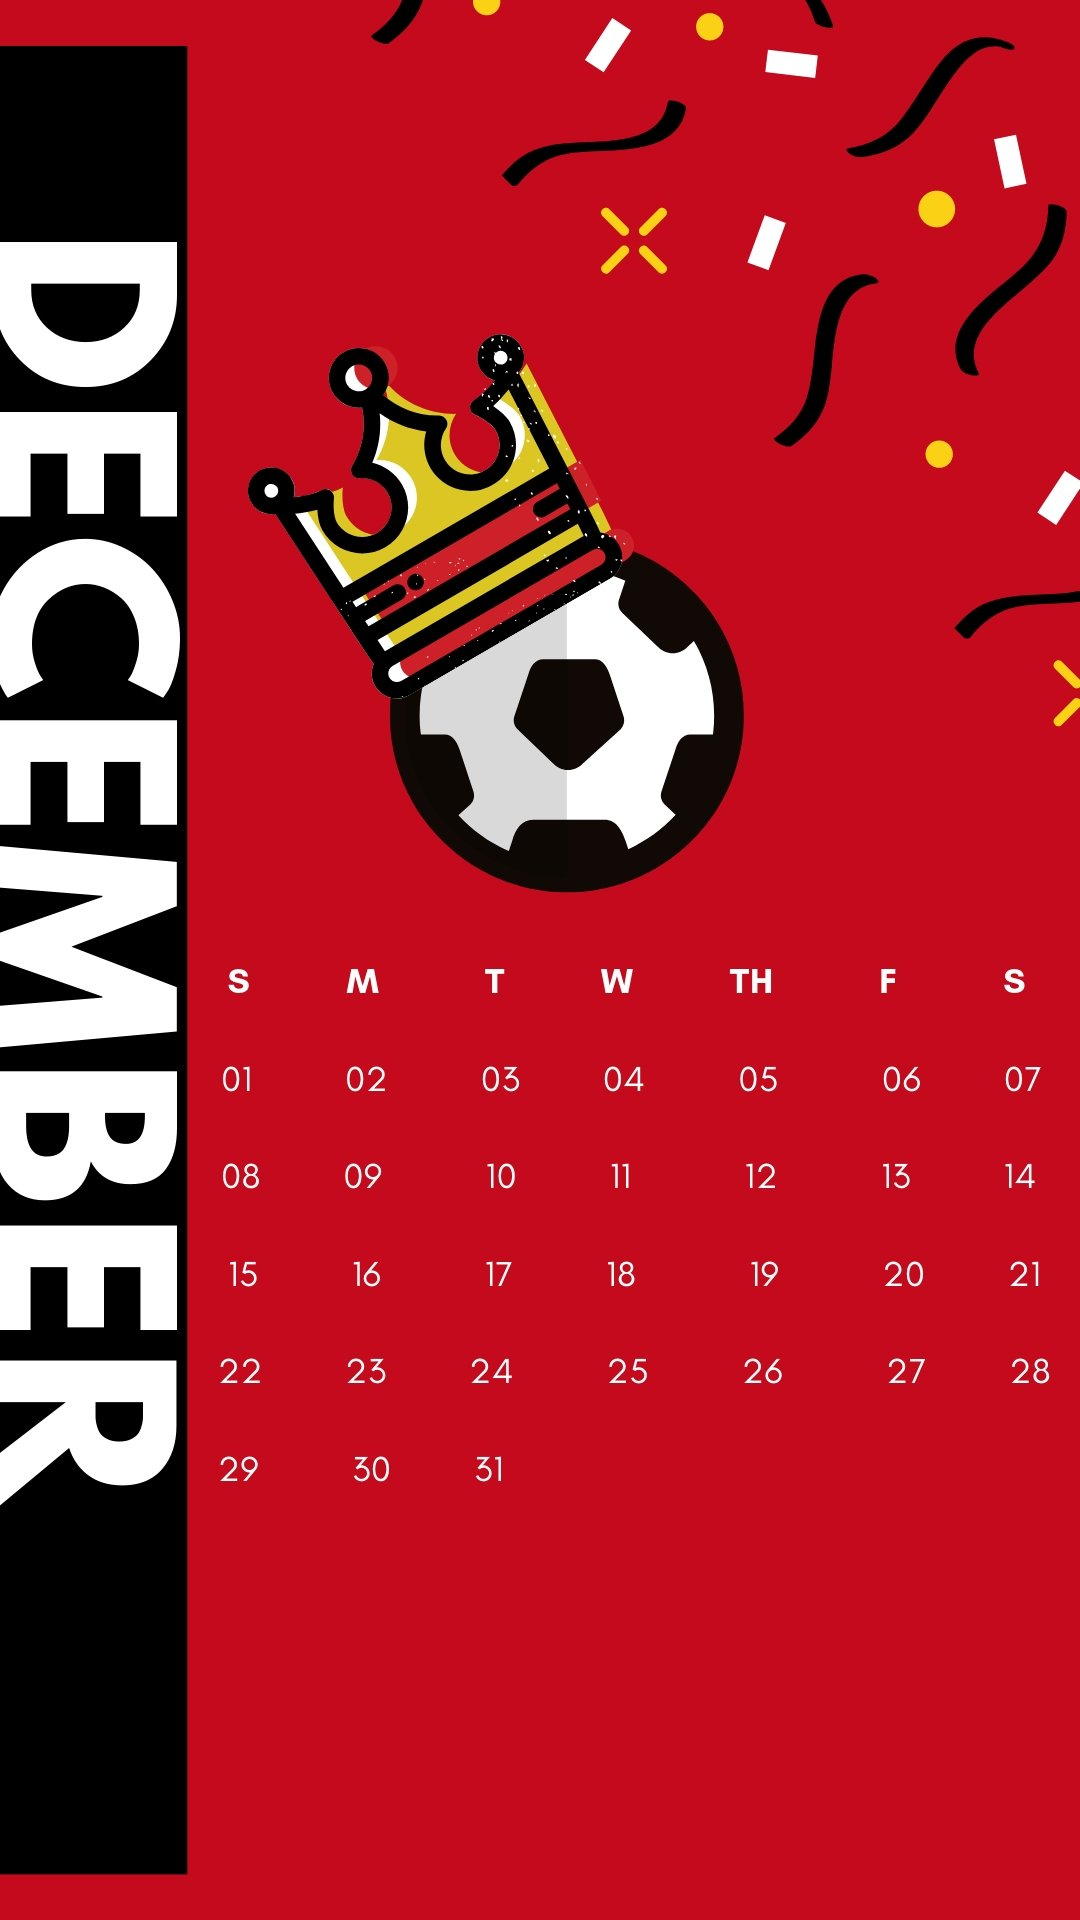 December 2019 iPhone Football Wallpaper